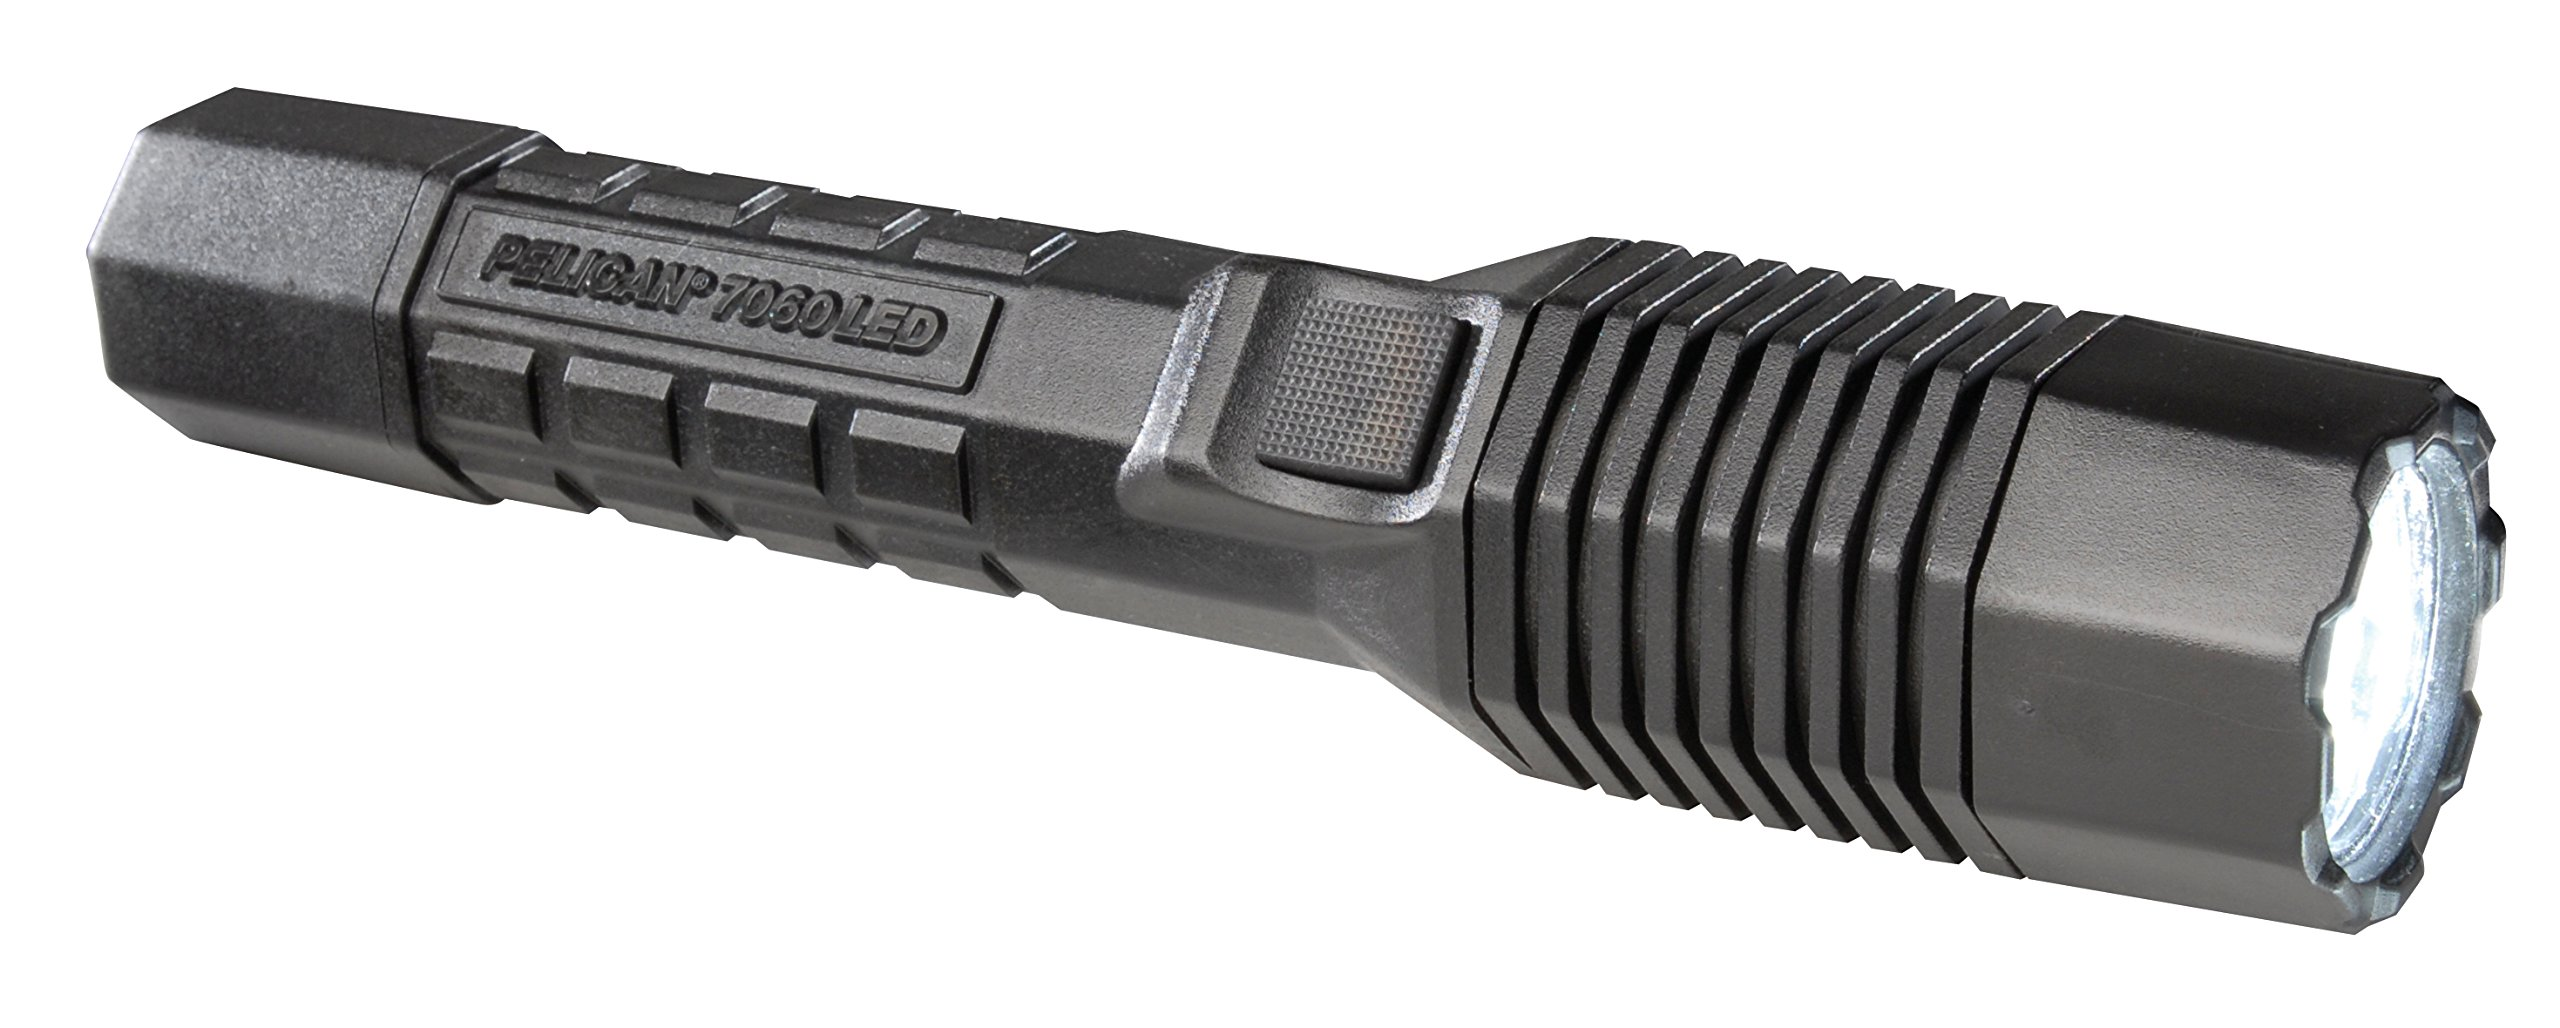 Pelican 7060 Rechargeable Tactical Flashlight With Charger (Black)